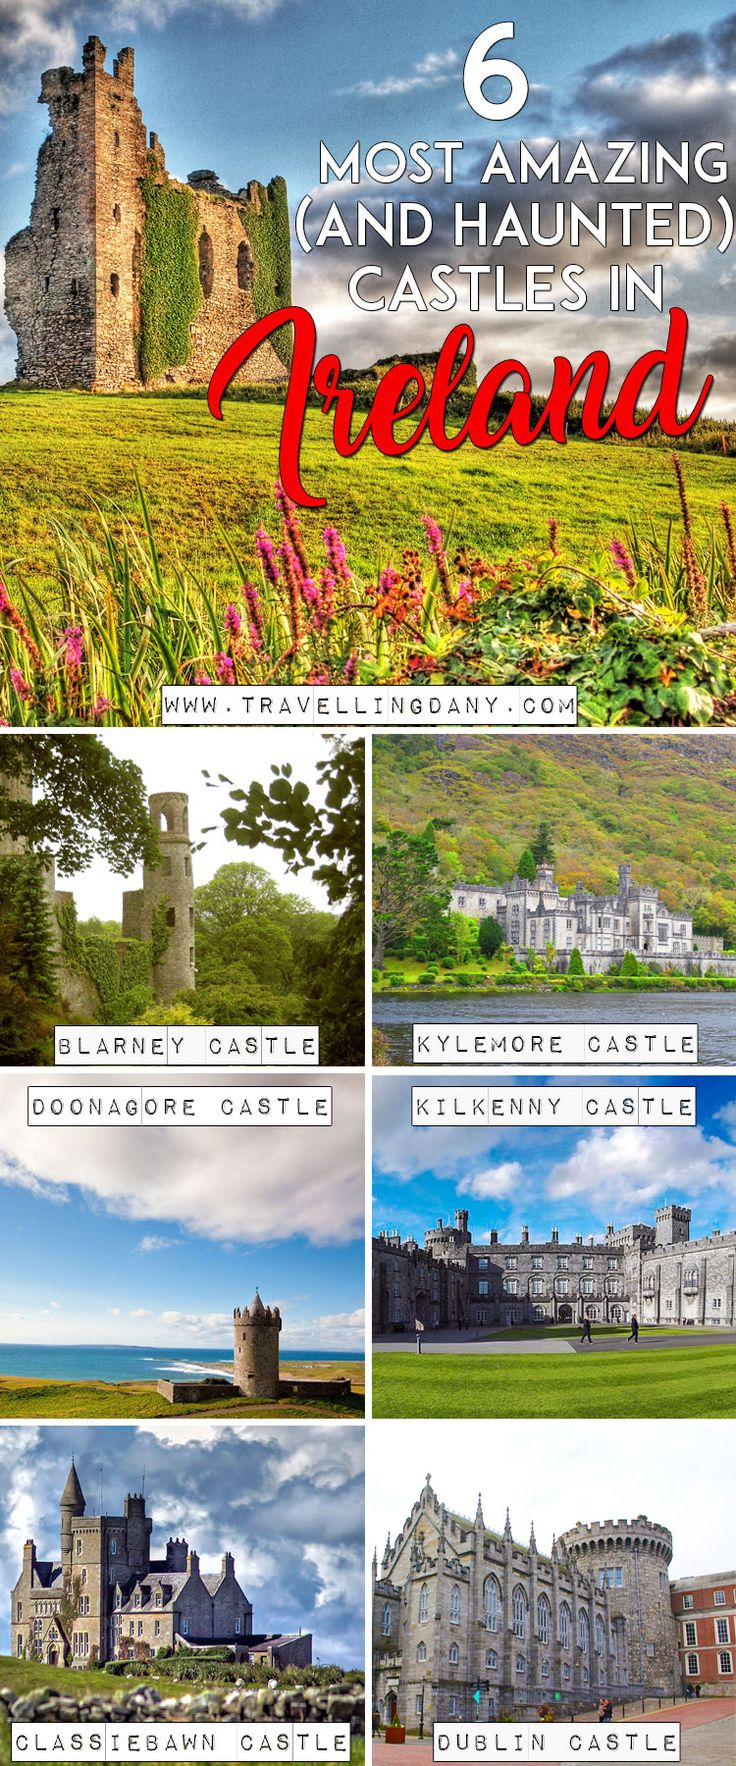 Discover 6 of the most amazing castles in Ireland, haunted by ghosts and scary legends, including... Halloween!